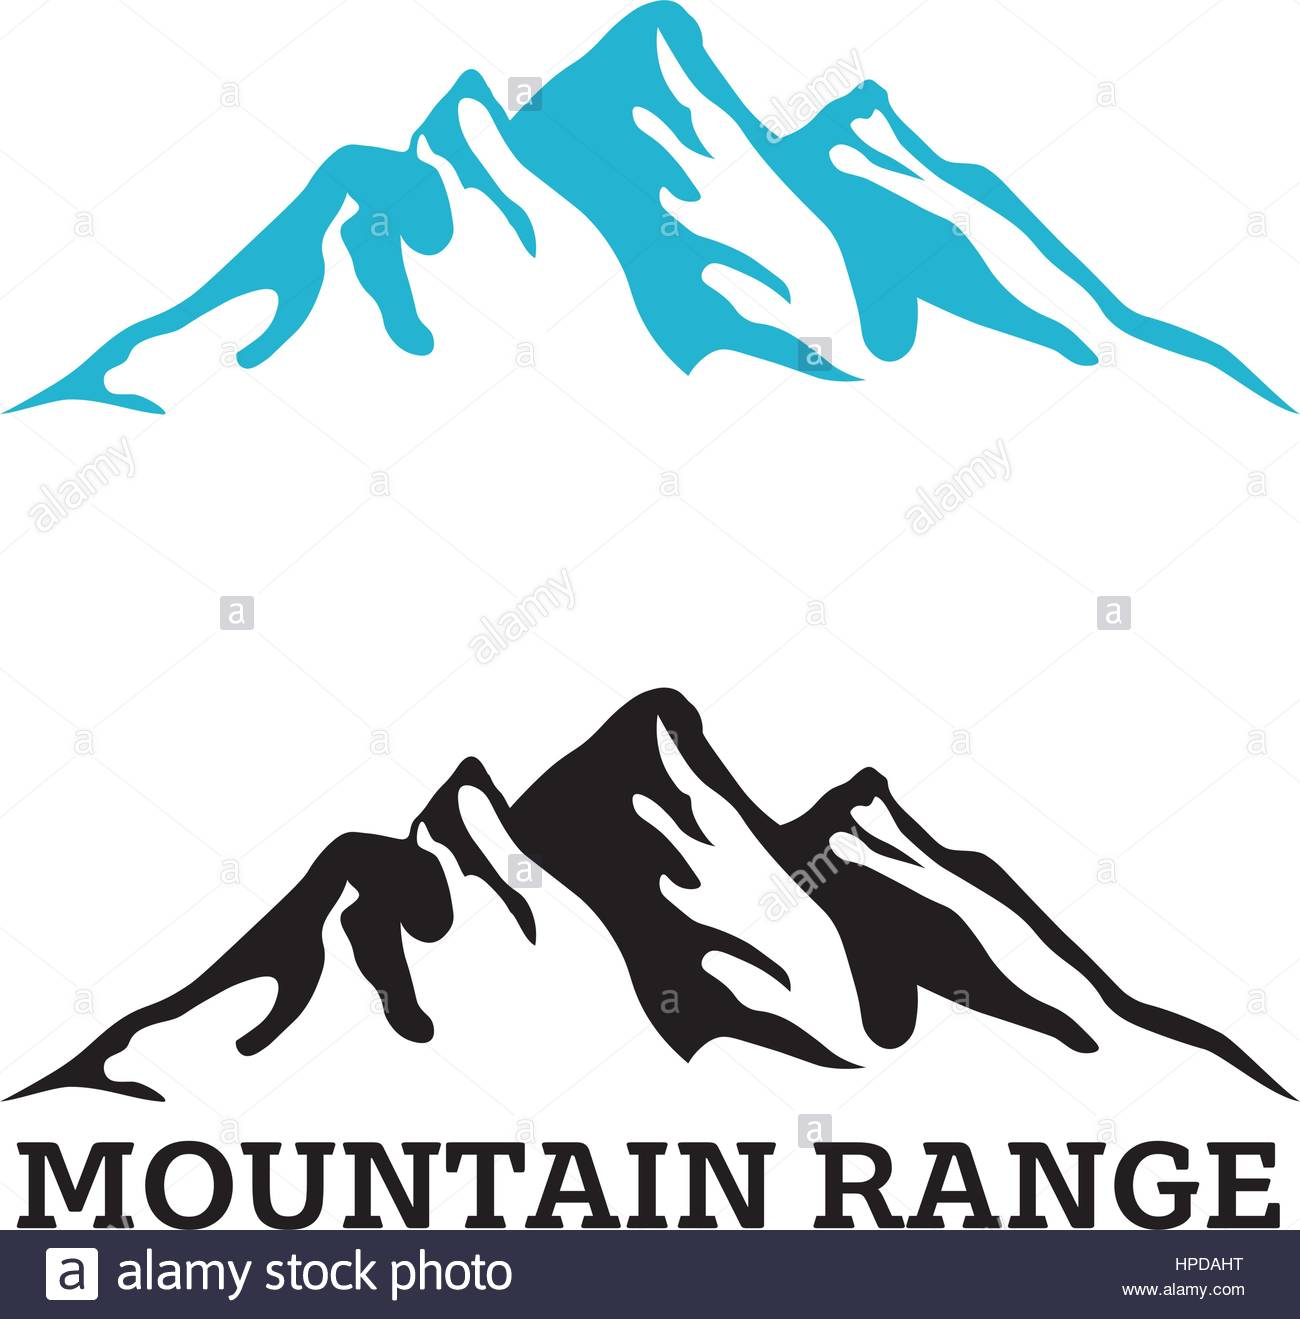 1300x1319 Company Logo Template With Mountain Range Silhouette Stock Vector